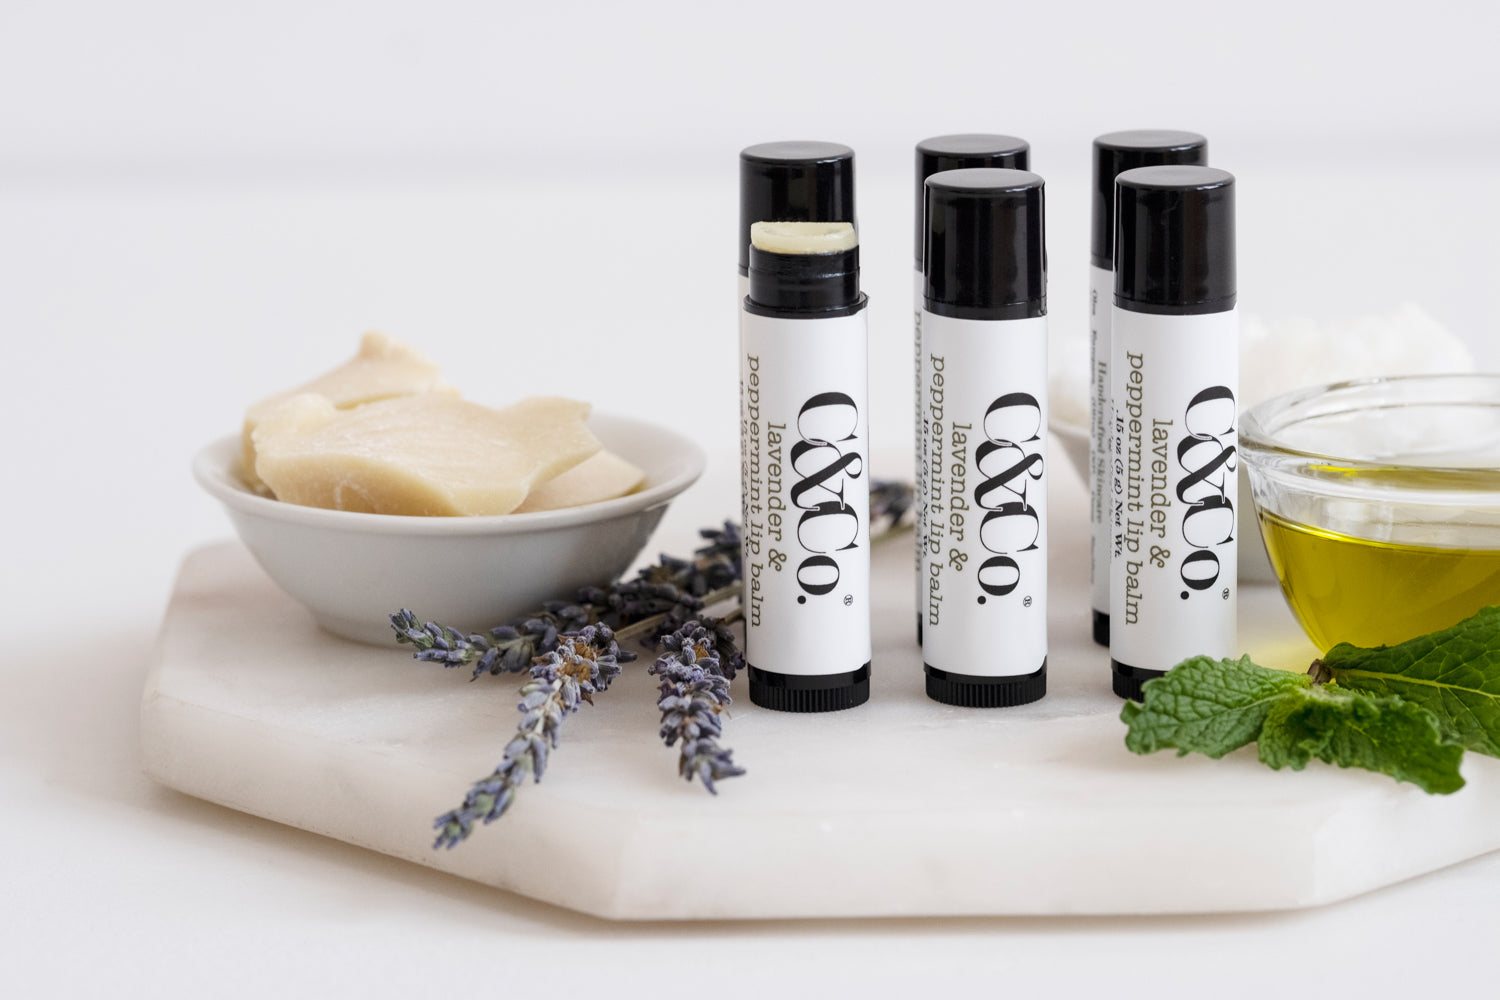 Lavender & Peppermint Lip Balm - C & Co.